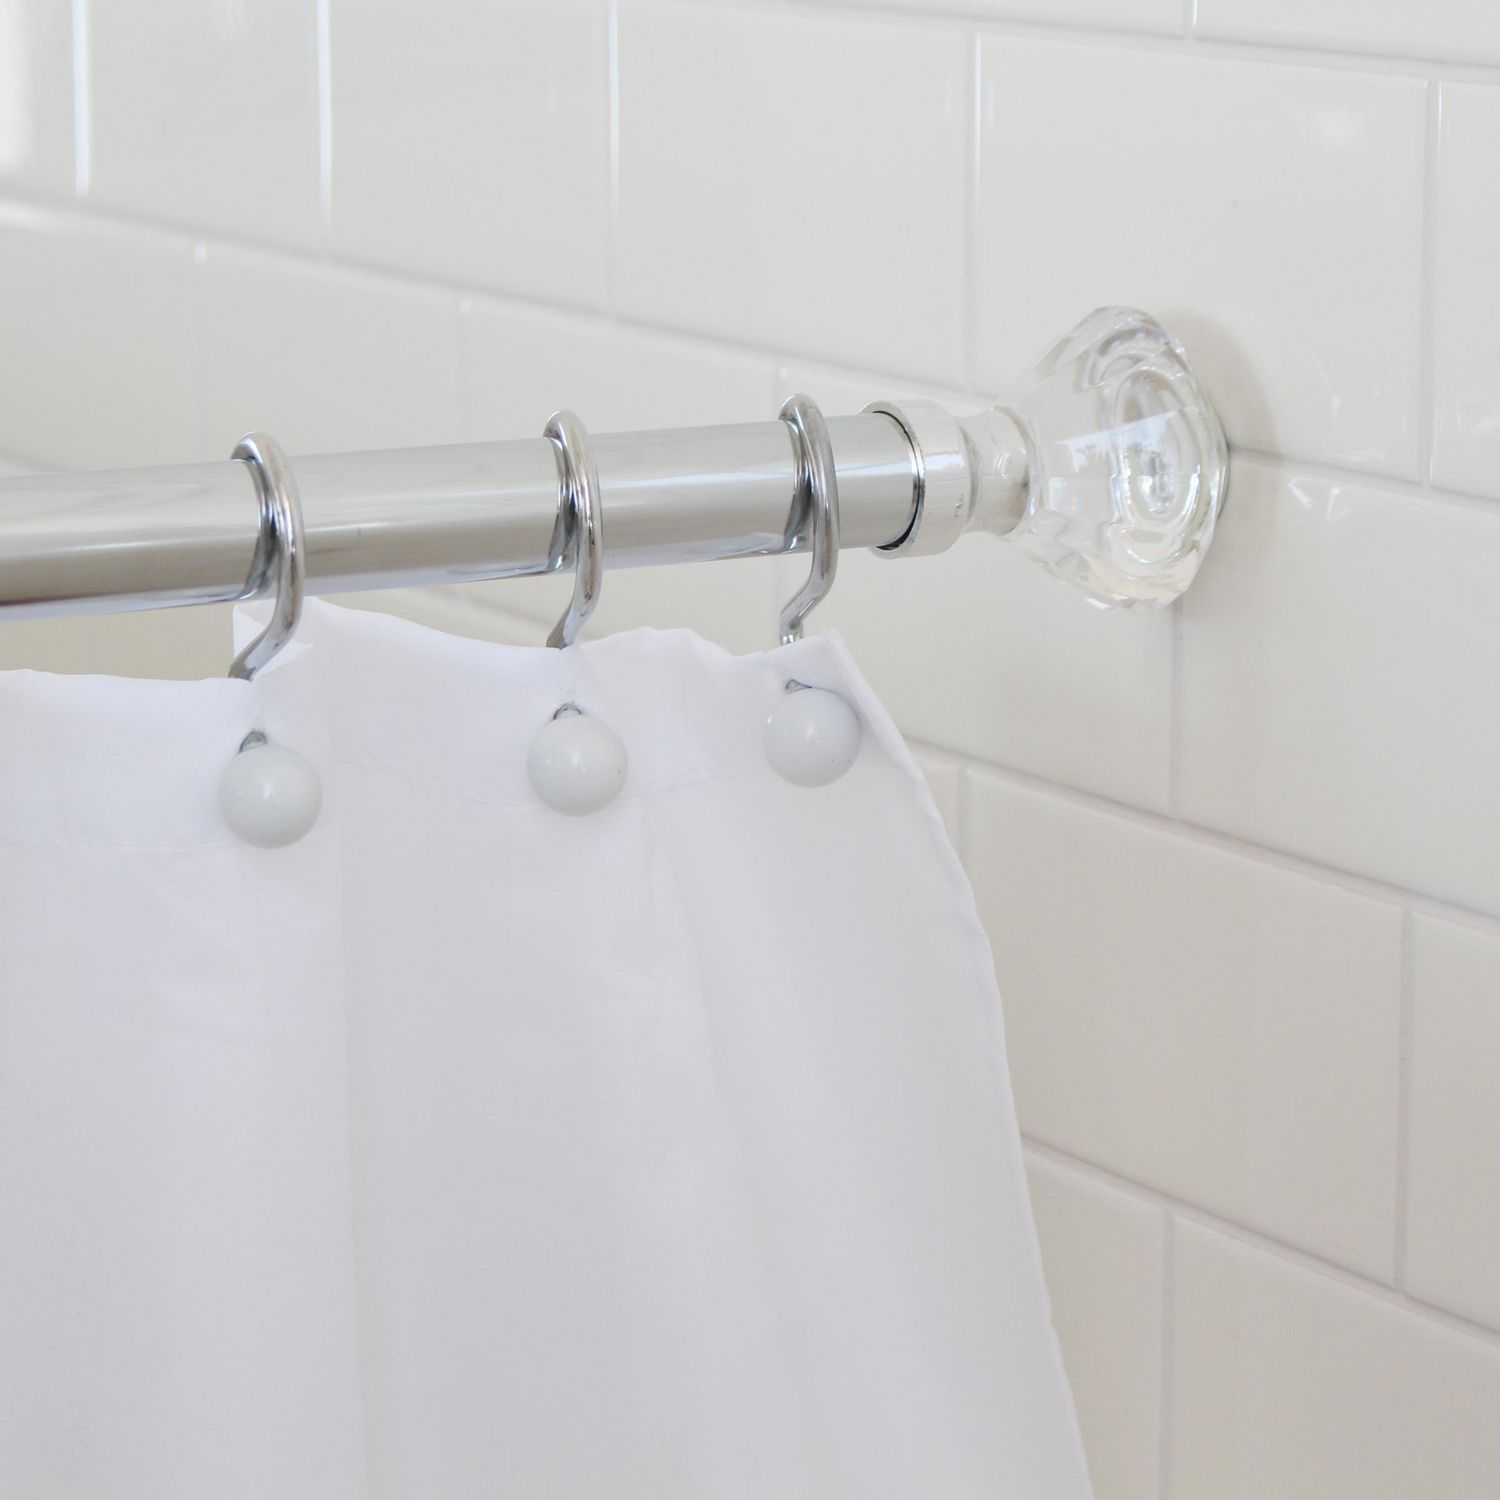 Splash Home Olena Neverrust Aluminum Constant Tension Bathroom Decorative Shower Curtain Rod Extendable 42 72 Inches